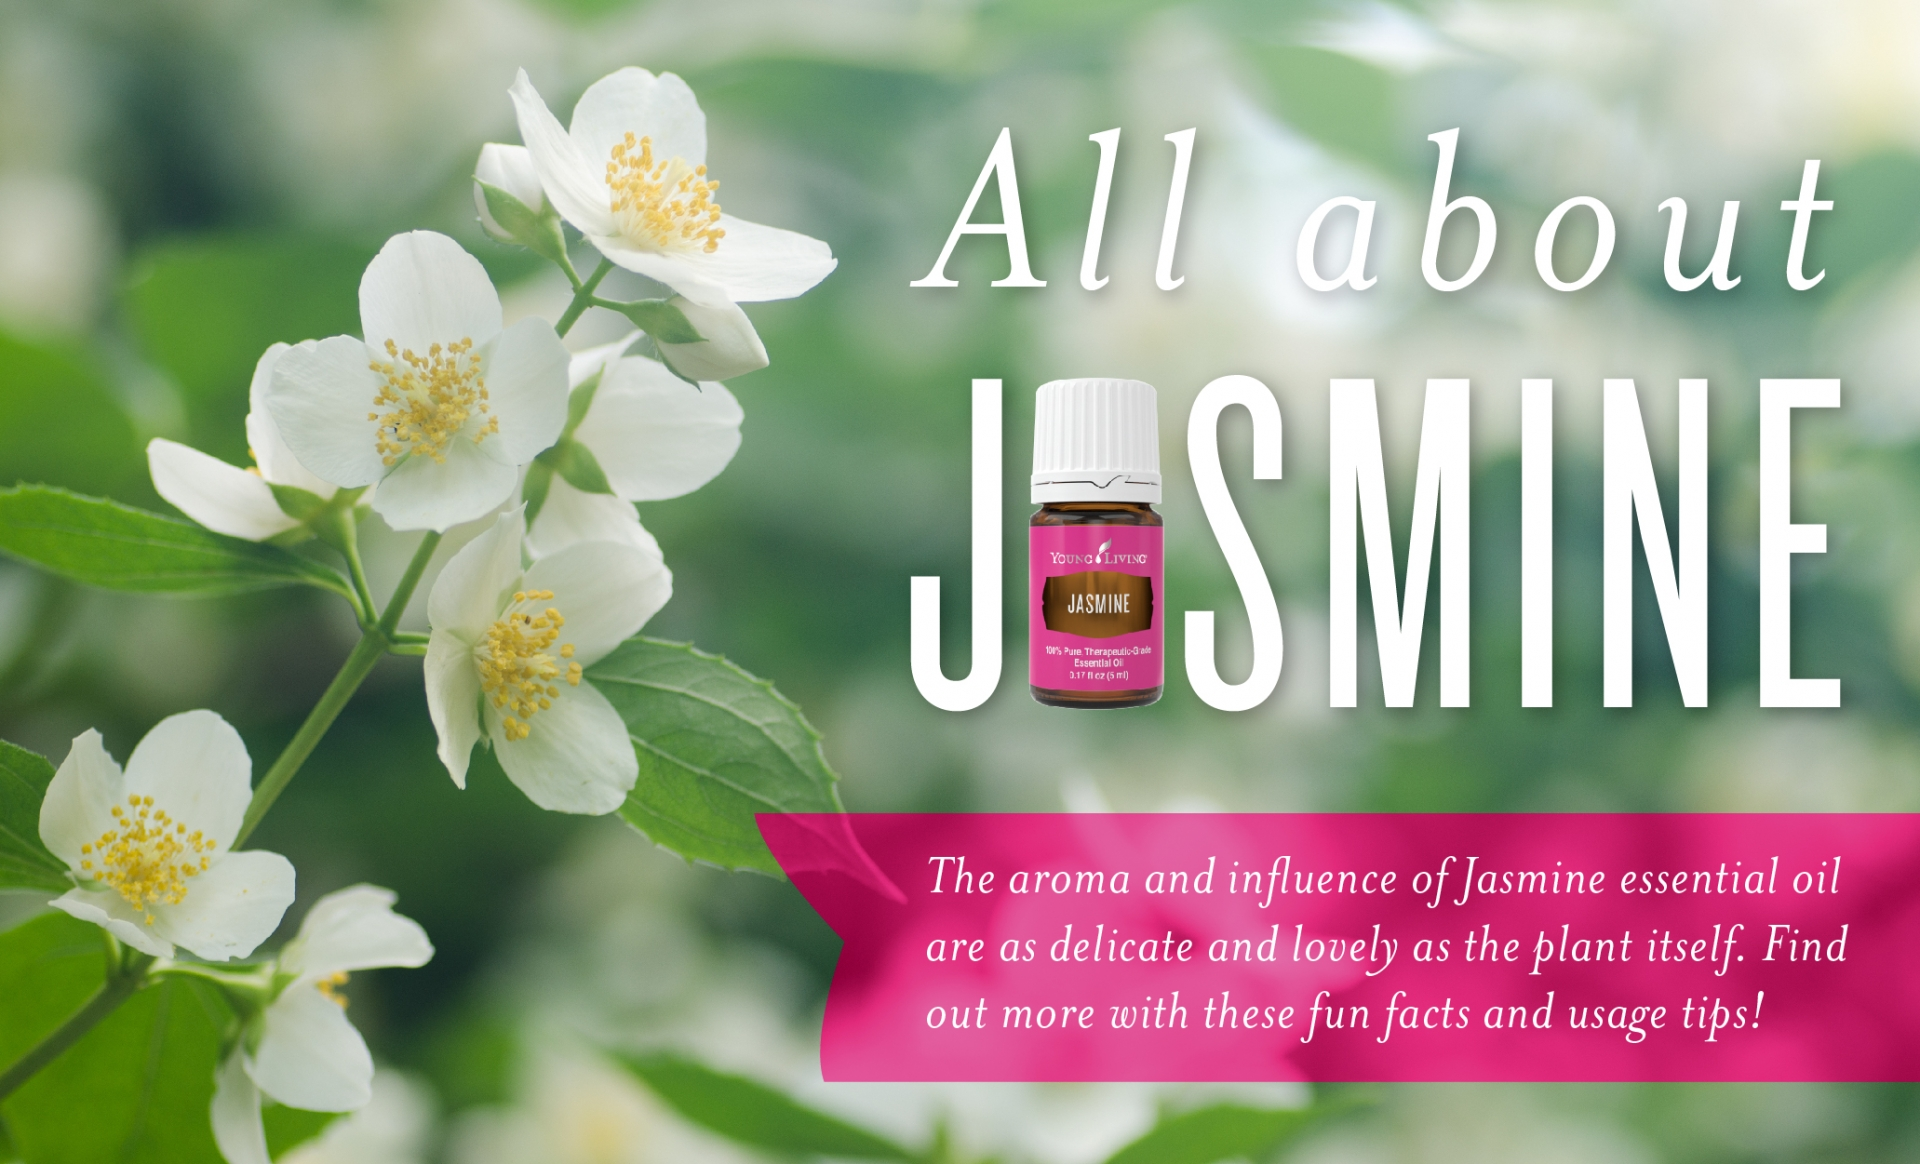 How to use jasmine essential oil young living blog view larger image all about jasmine header izmirmasajfo